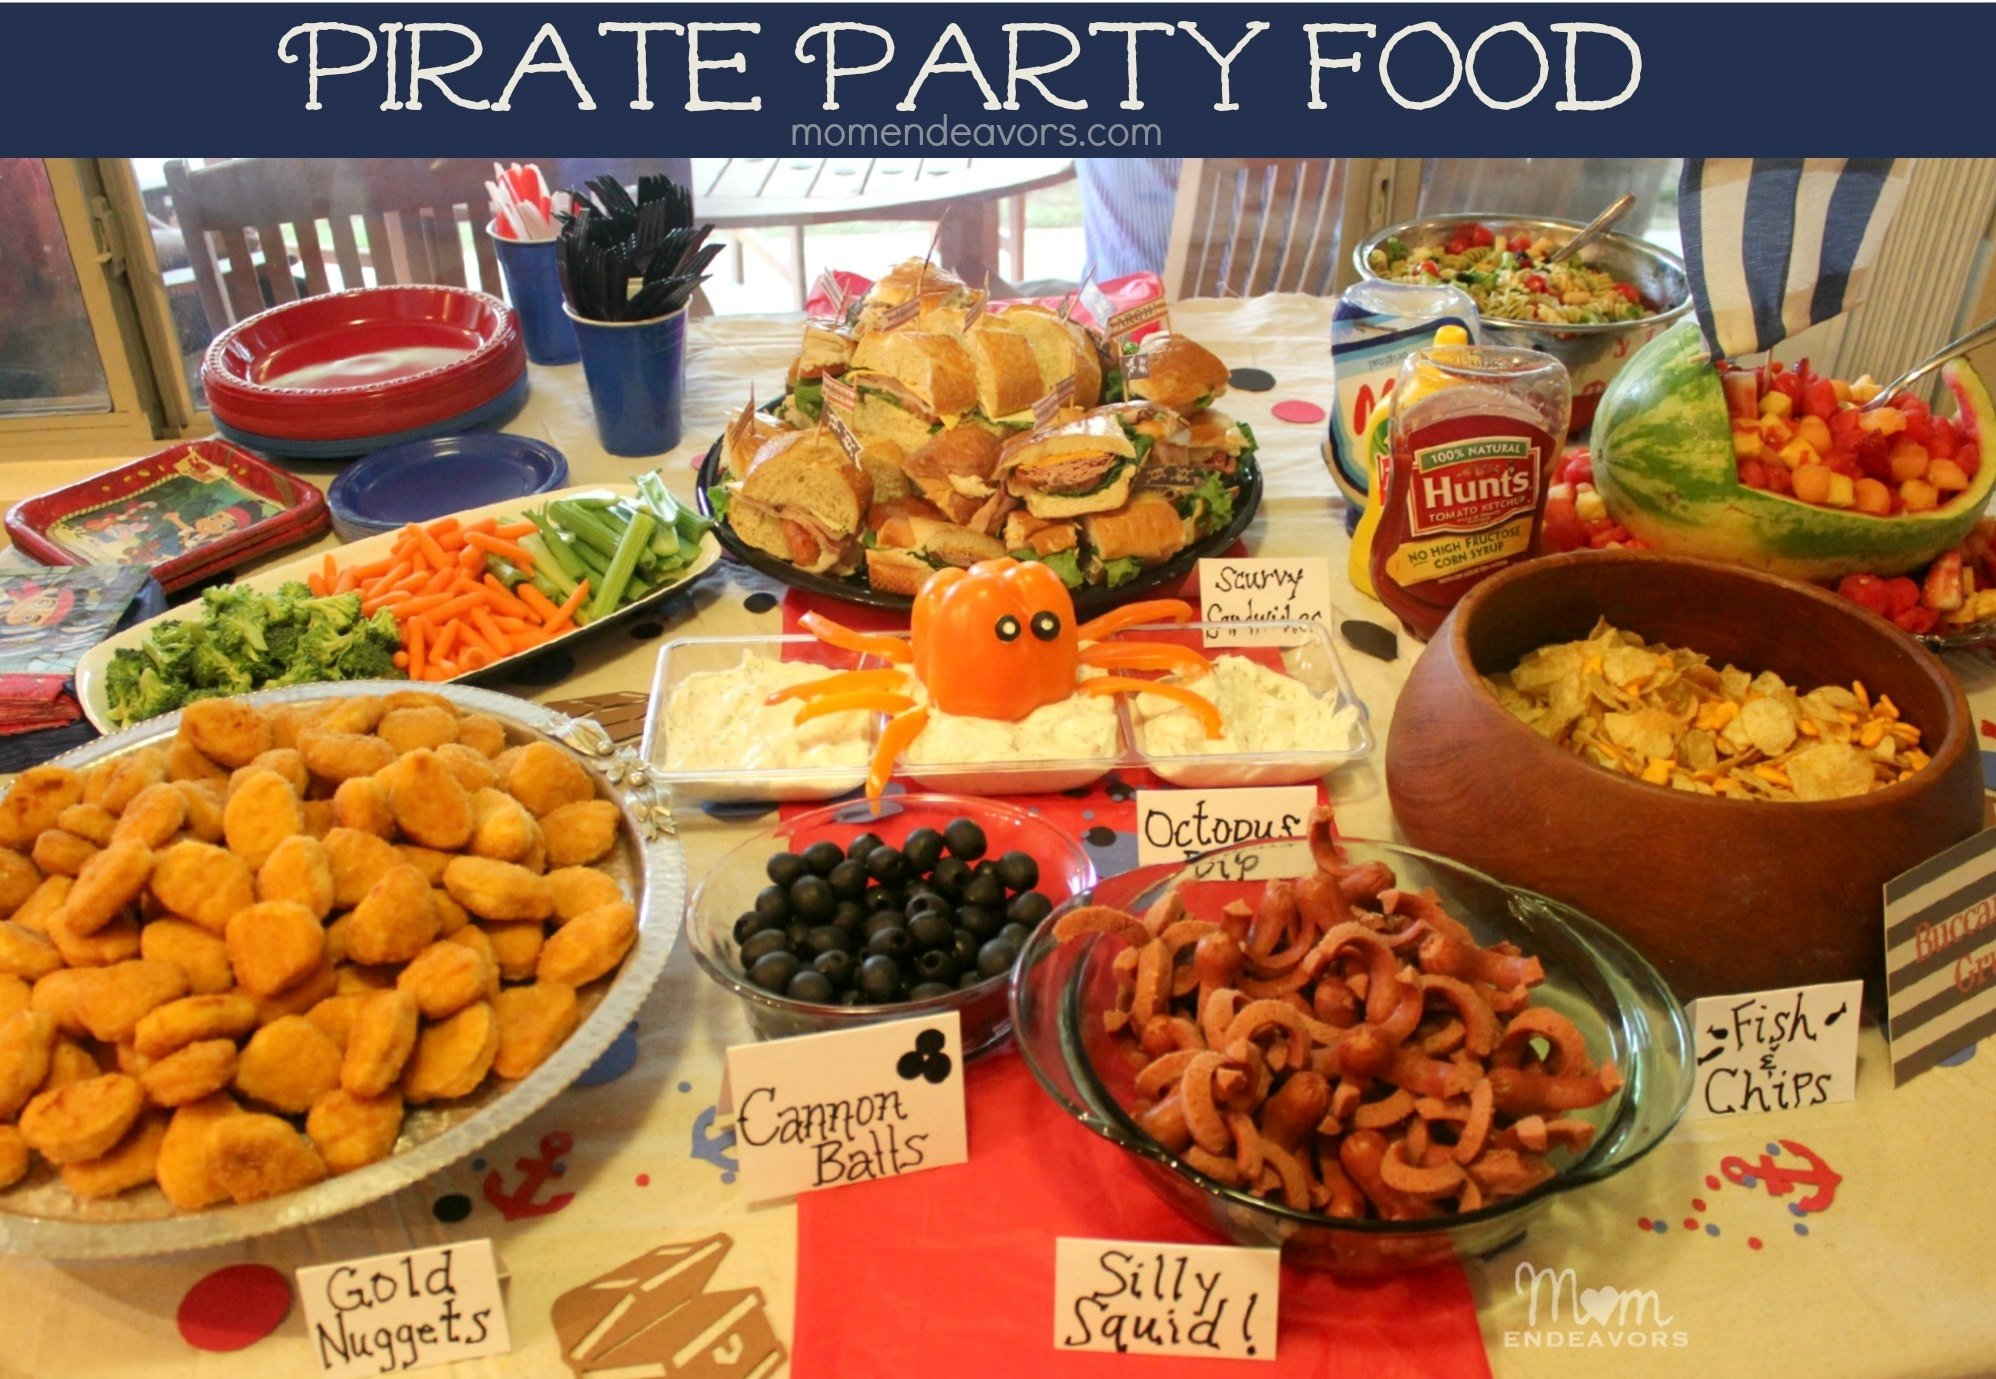 10 Fashionable Birthday Food Ideas For Adults jake and the never land pirates birthday party food 5 2021